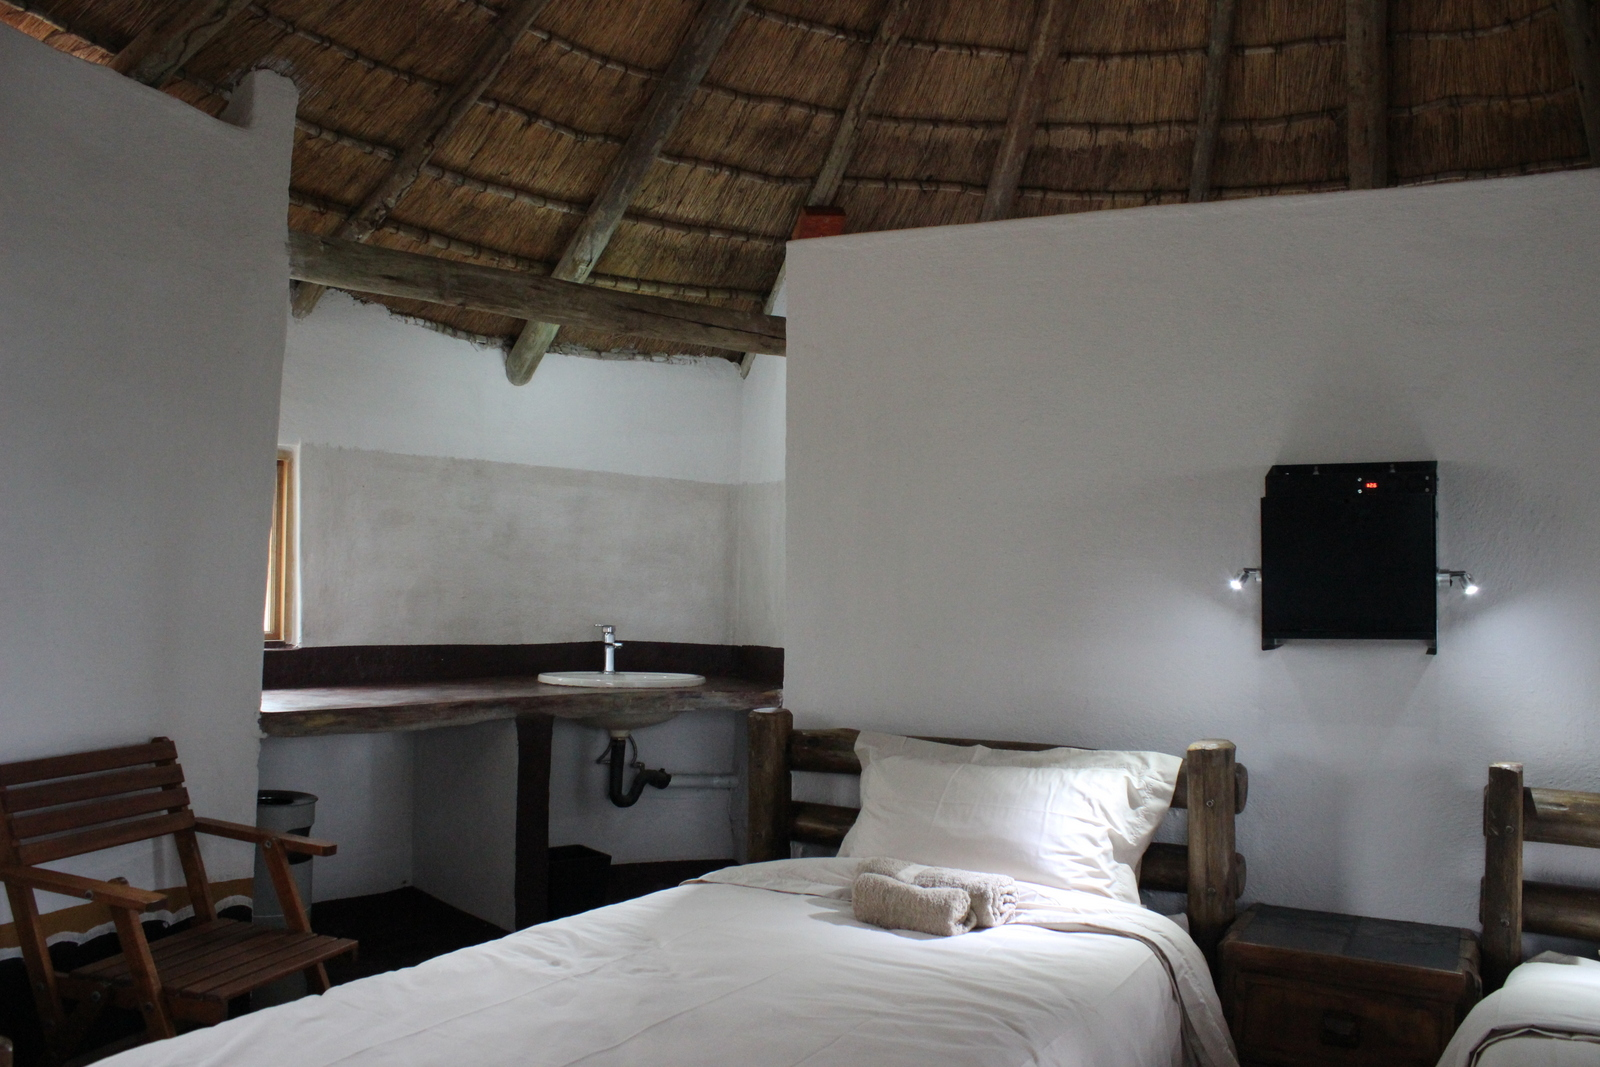 Rooms with en-suite, linen and solar